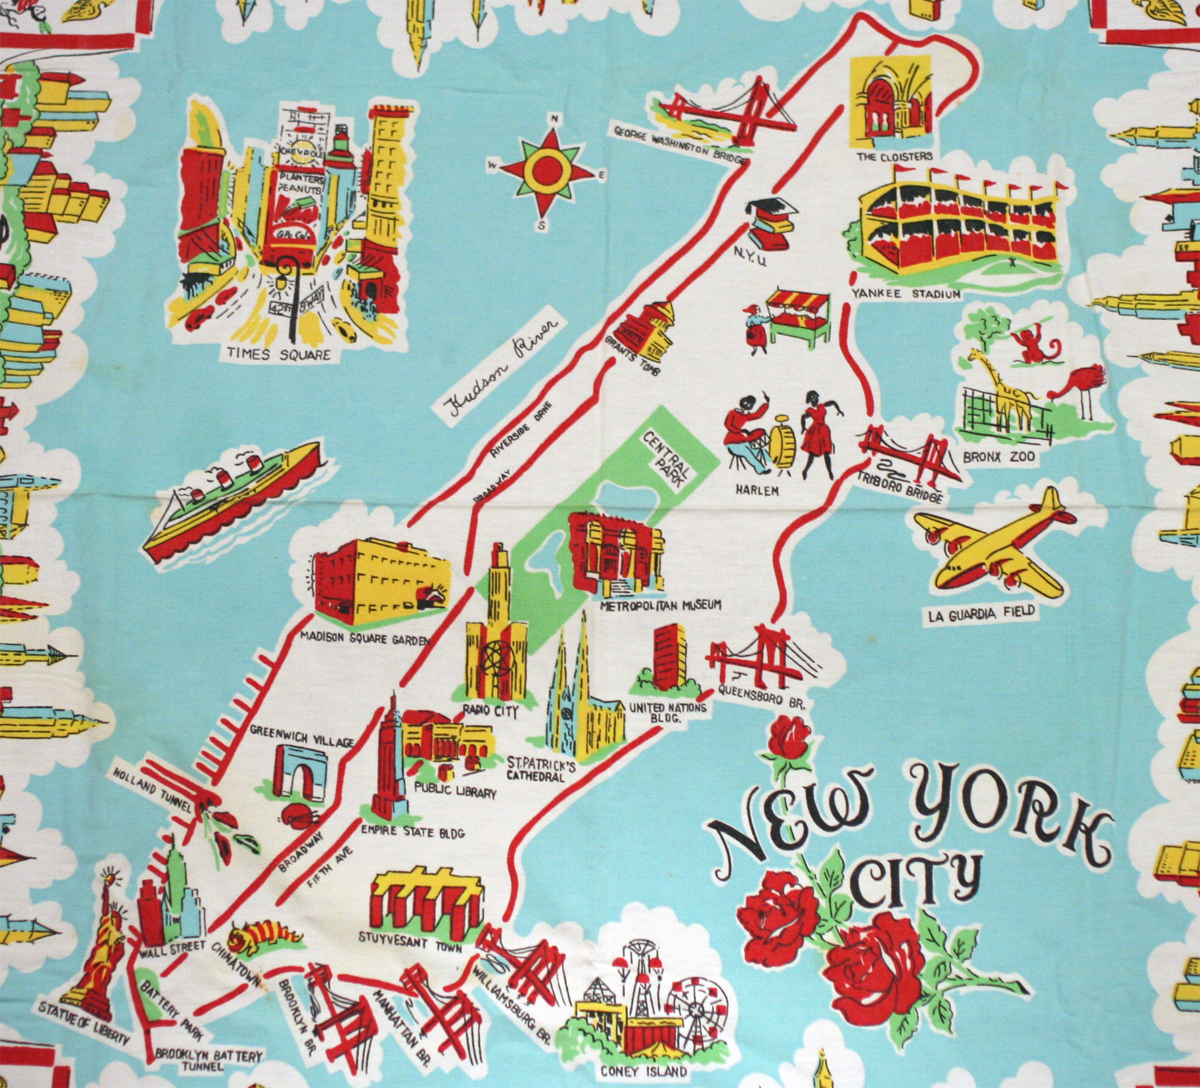 1950 s embroidered cartoon map showing nyc landmarks the attractions outside of manhattan coney island yankee stadium bronx zoo laguardia field are